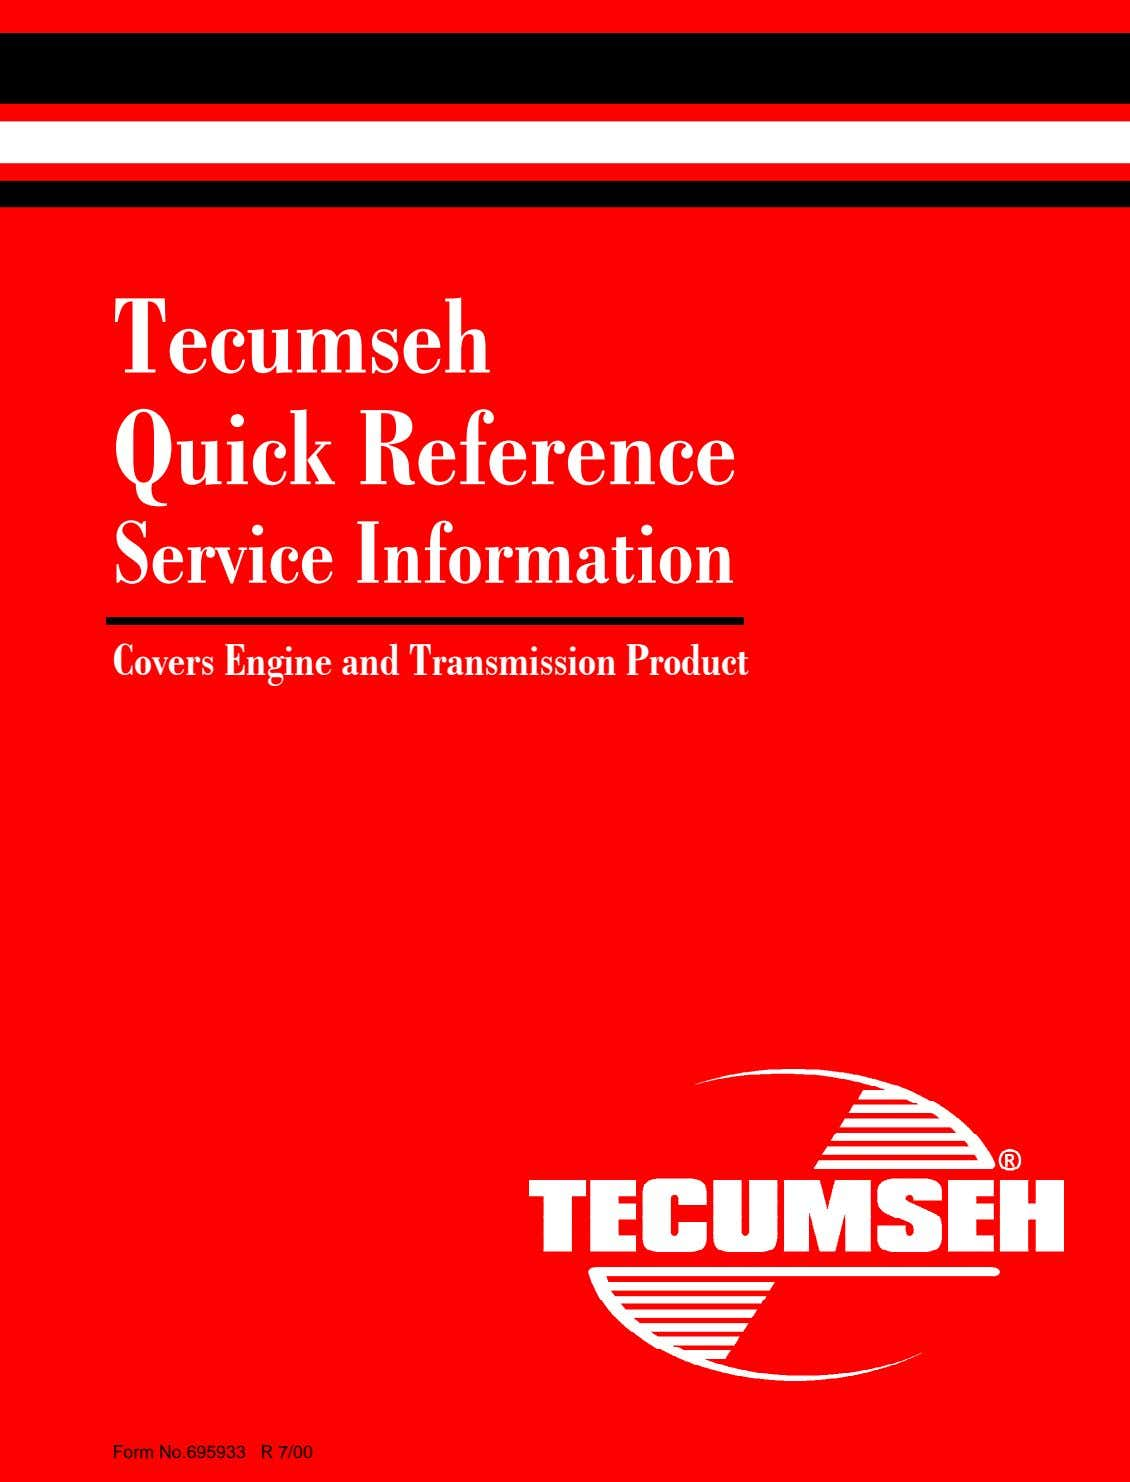 Tecumseh Quick Reference Service Information Covers Engine and Transmission Product Form No.695933 R 7/00